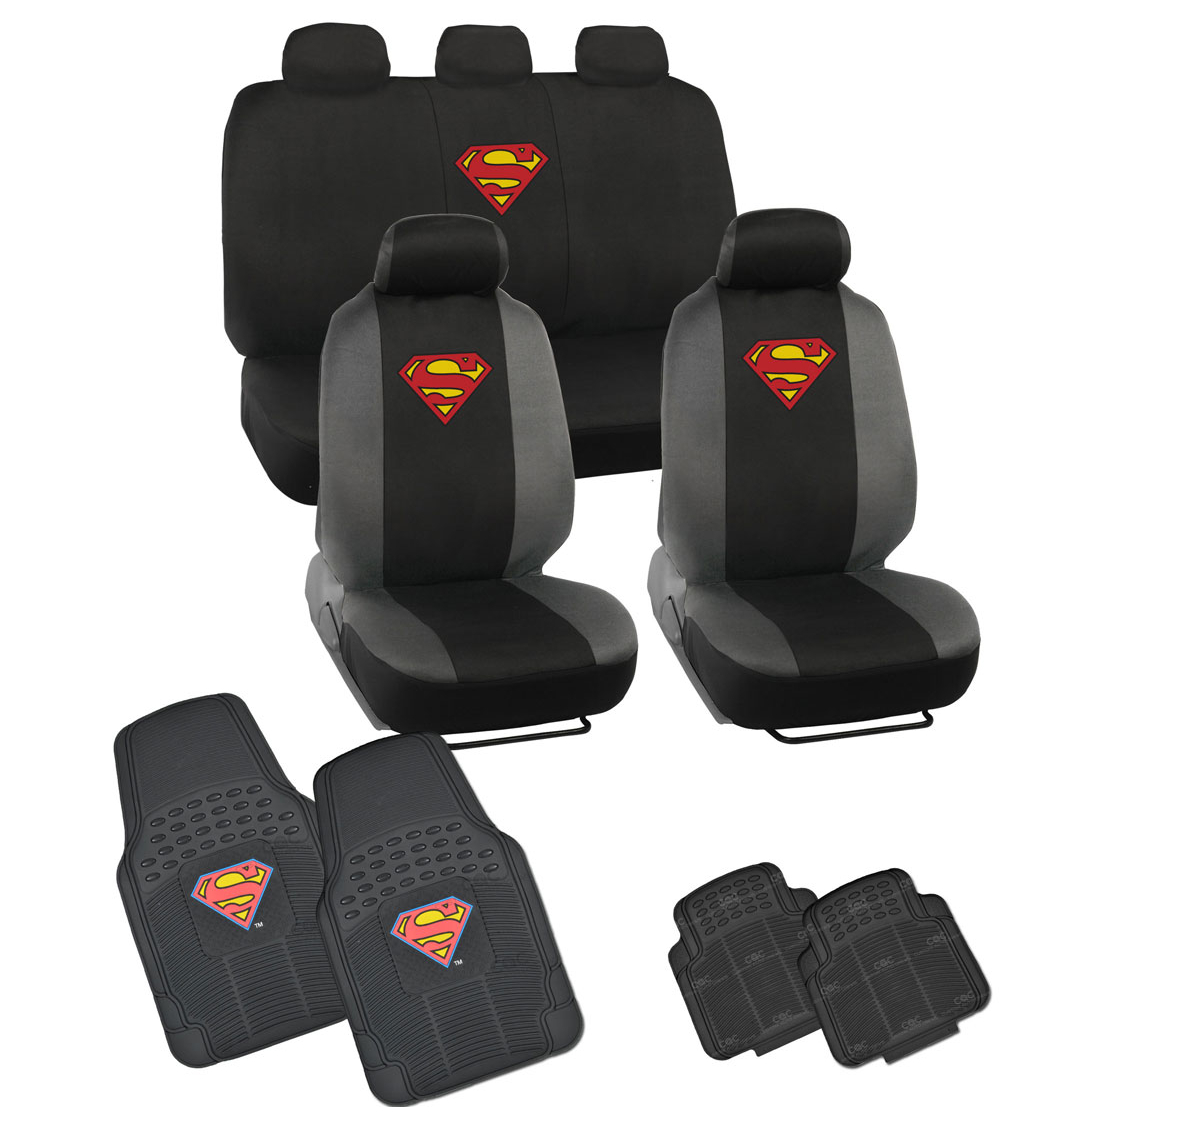 Rubber mats ebay - Image Is Loading Superman Seat Covers Amp 4pc Rubber Floor Mats